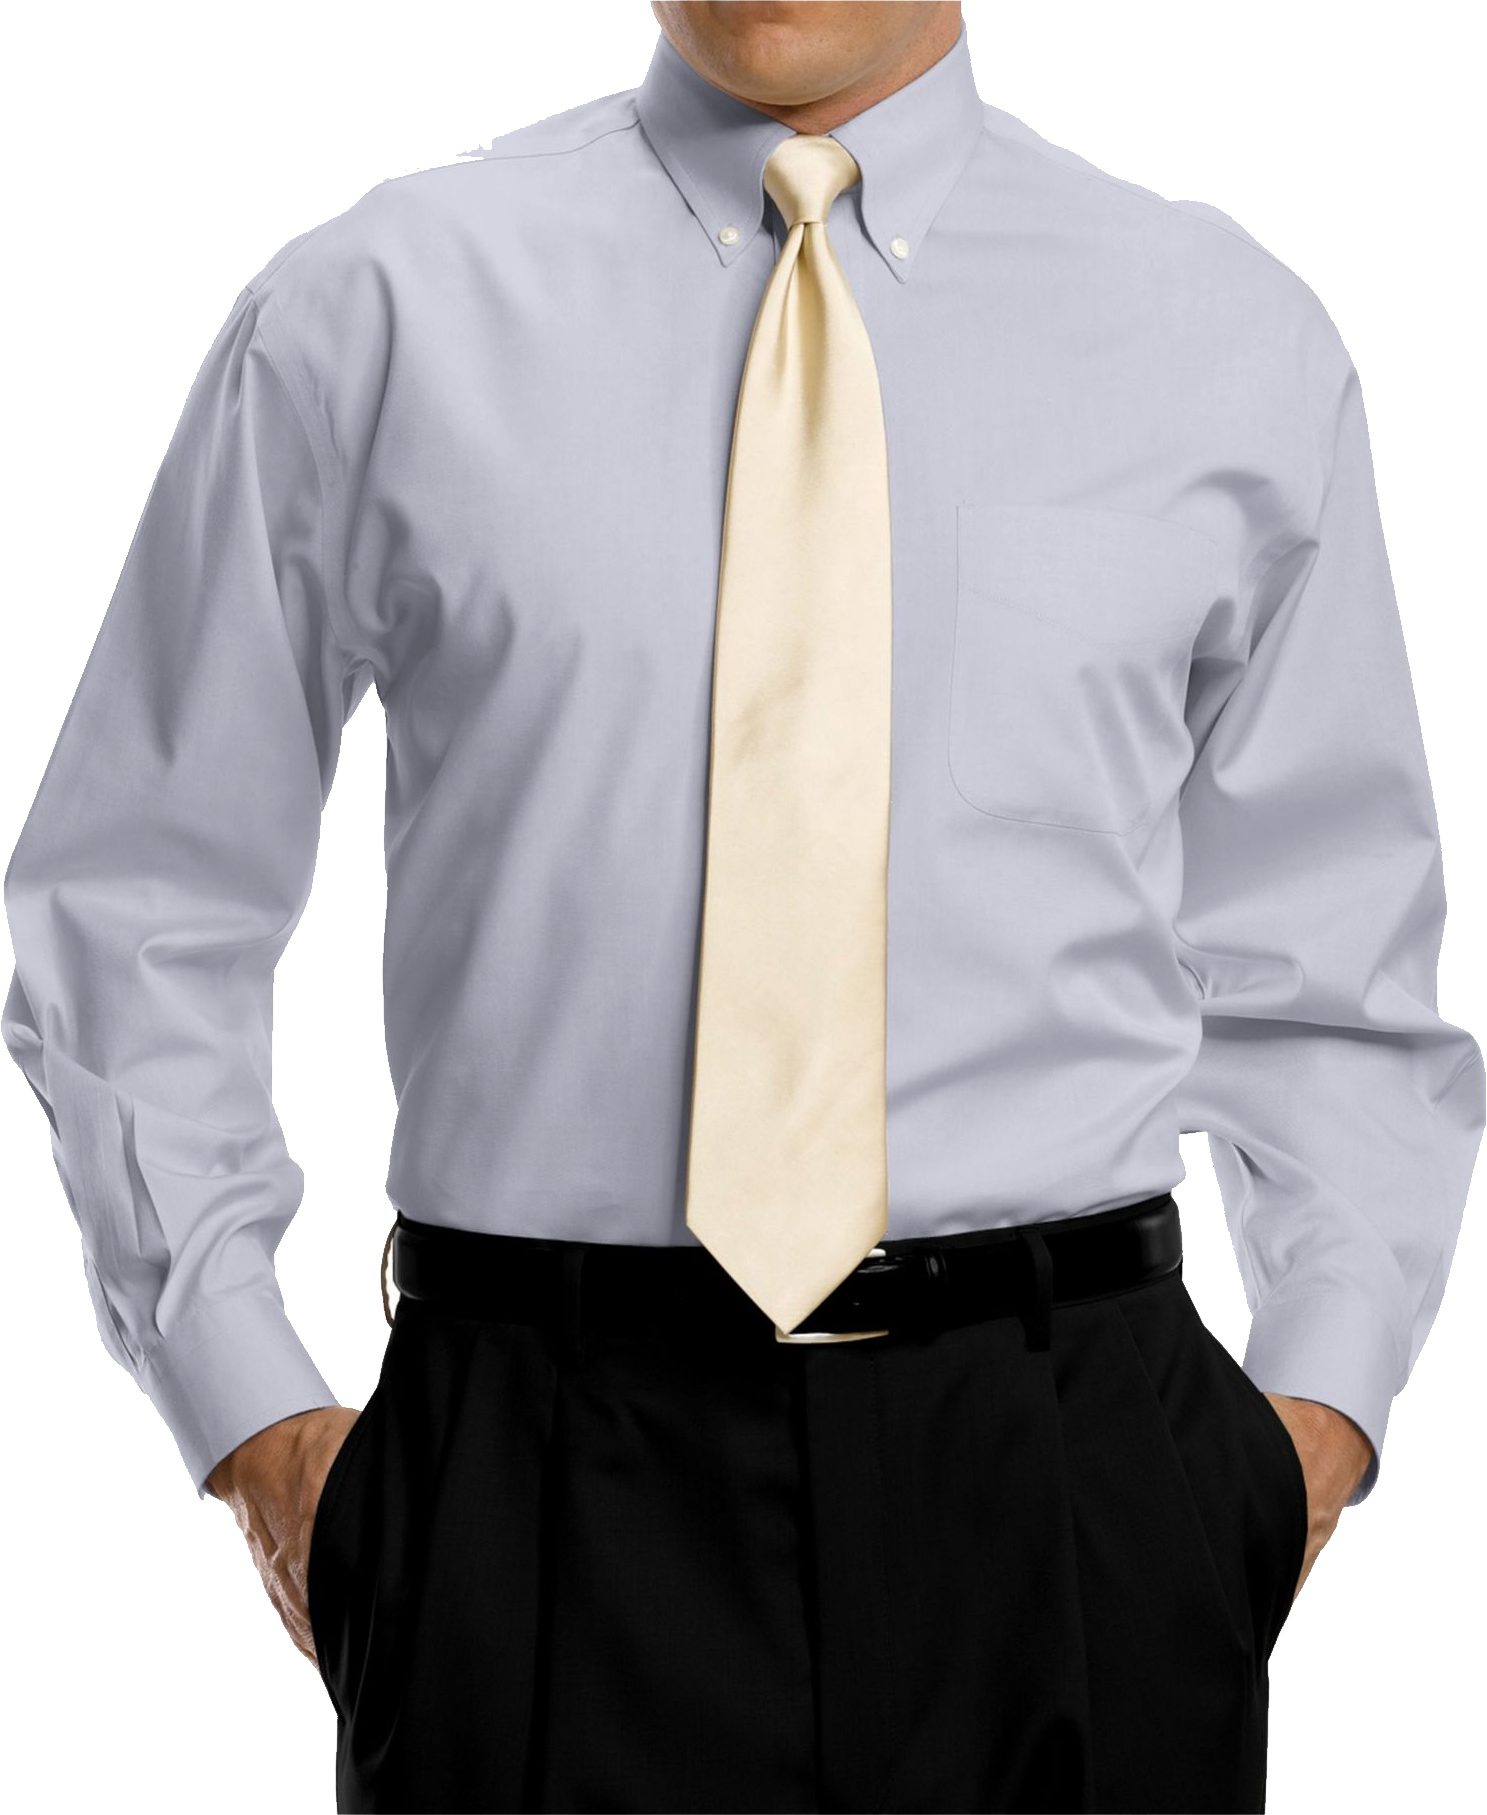 Dress shirt PNG images free download